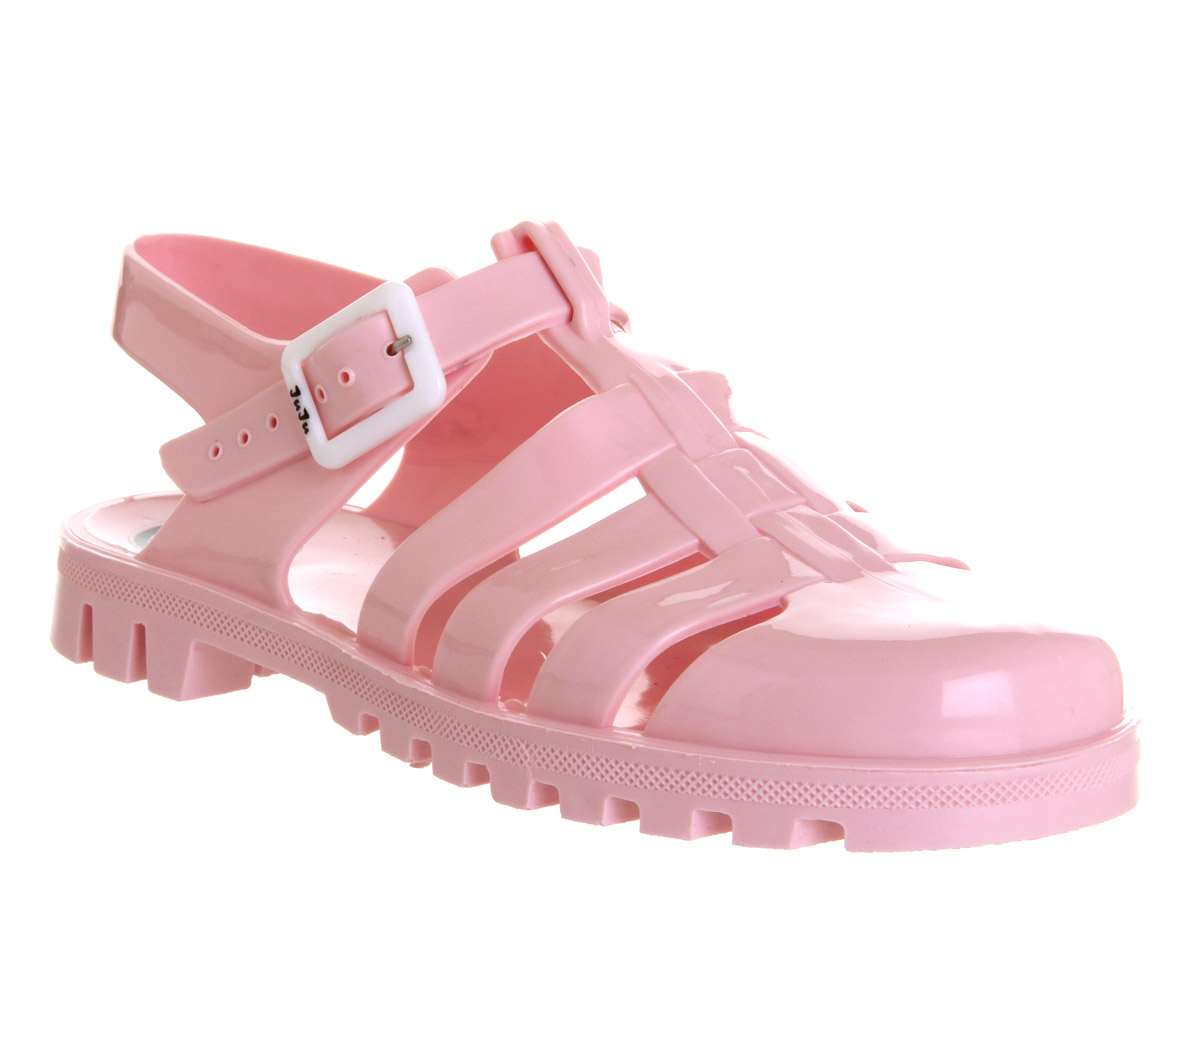 0c2d474700b9 Details about Womens JuJu Maxi Low Jelly Shoes PALE PINK Sandals